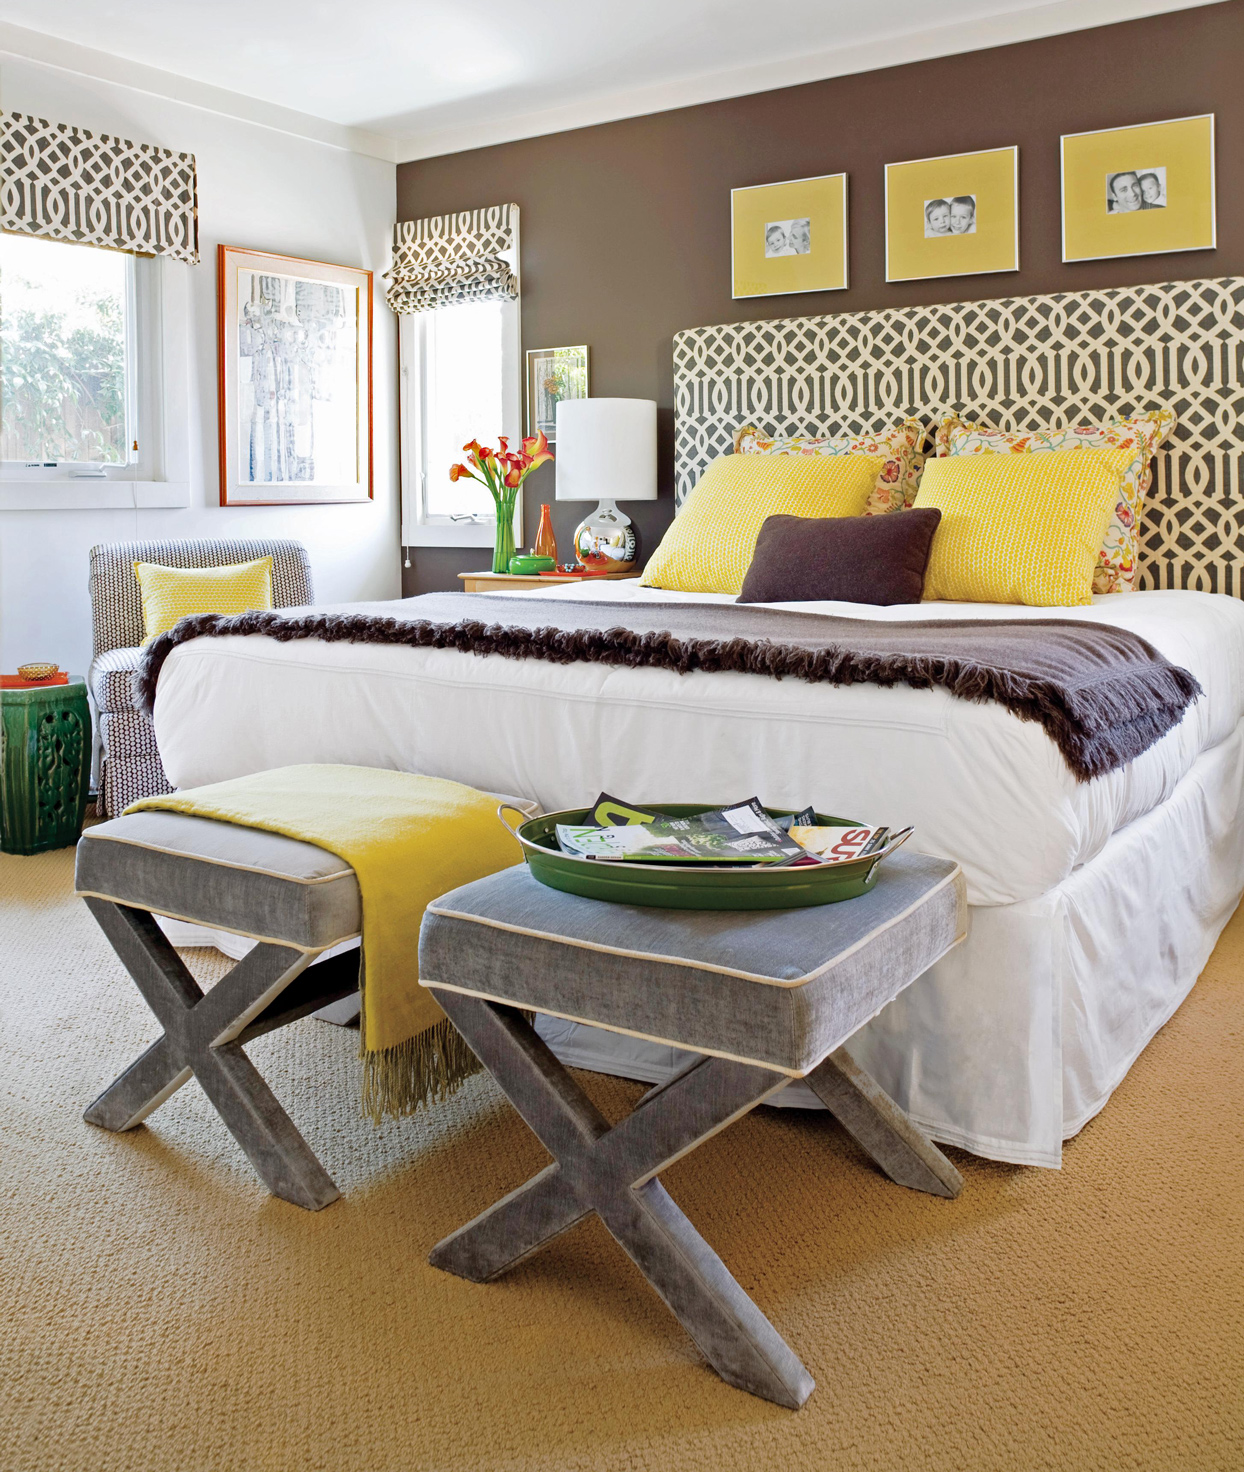 bedroom with yellow accents